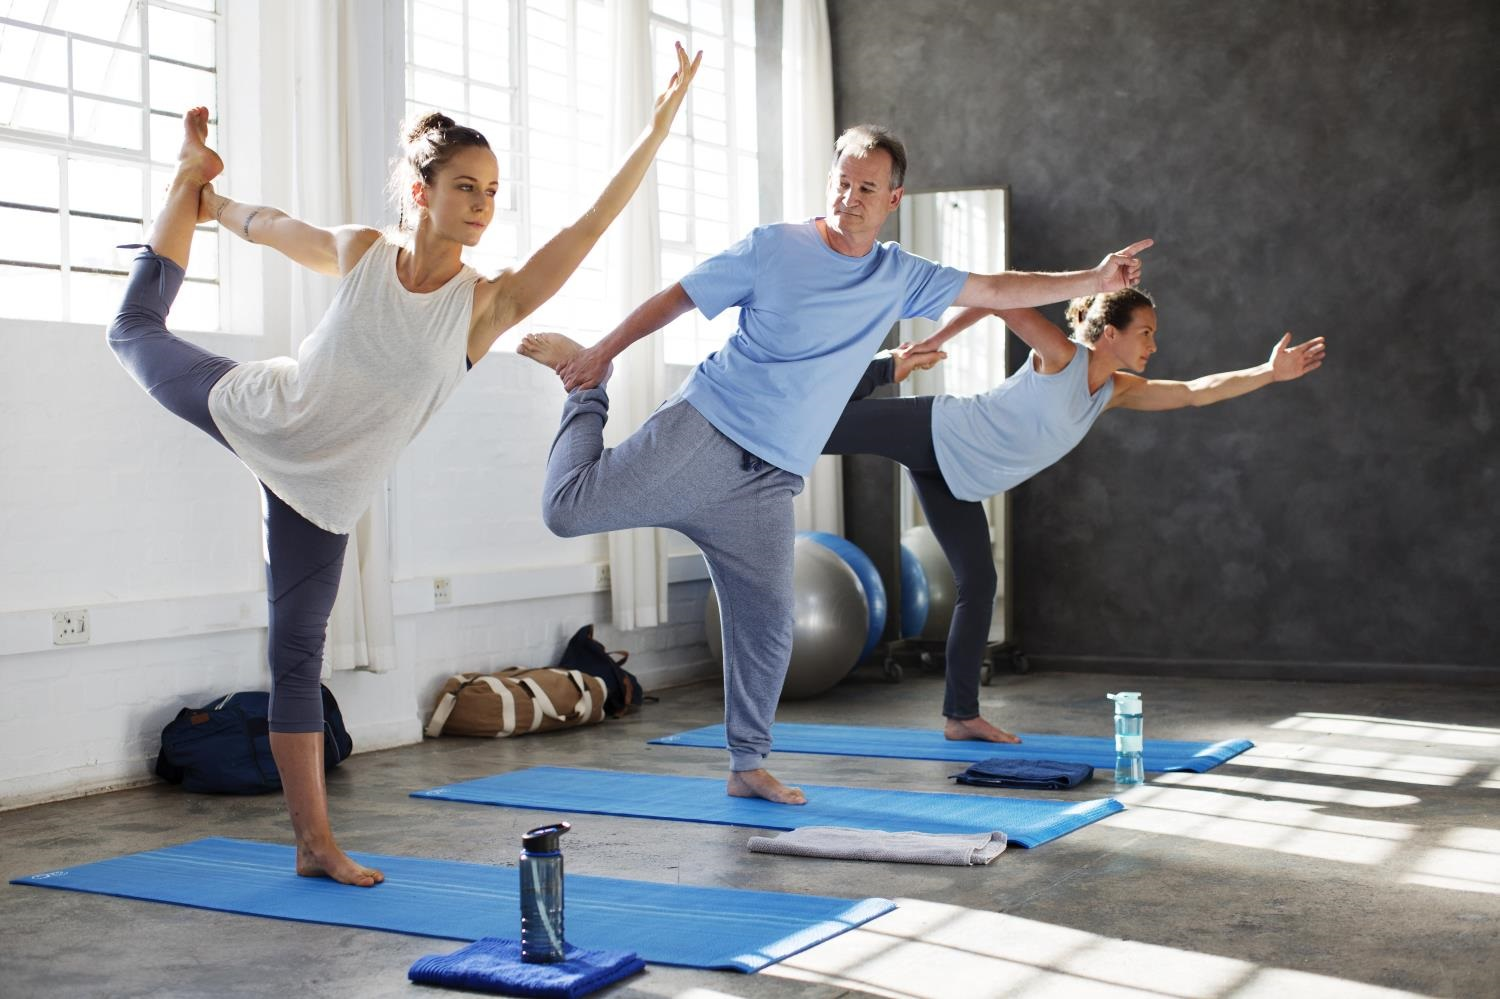 Man in a blue t-shirt trying to do yoga with two women